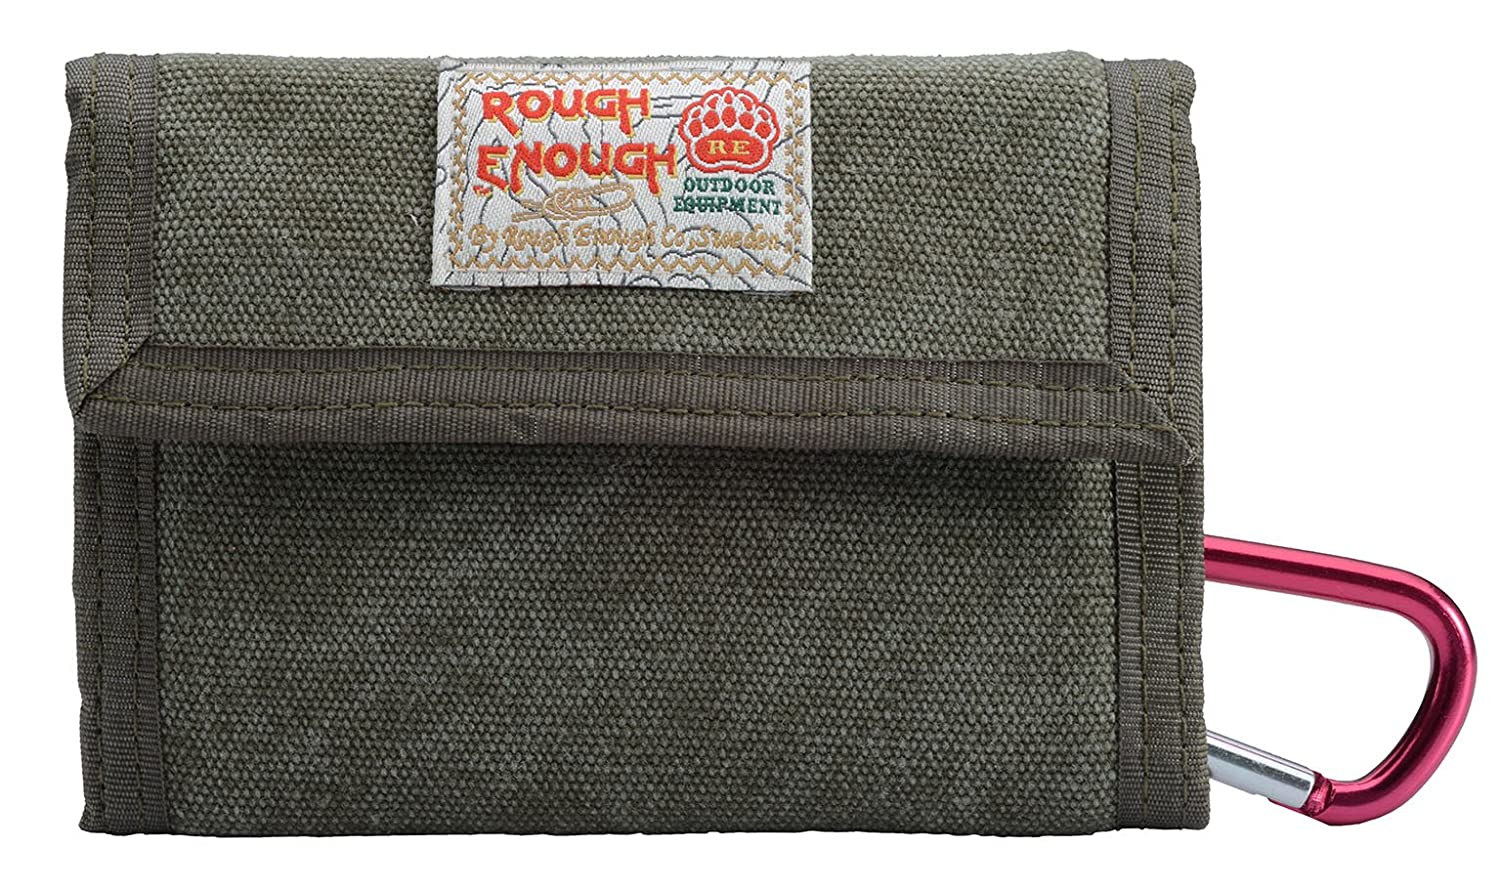 RE ROUGH ENOUGH Rough Enough Classic Stylish Vintage Fancy Heavy Canvas Wallet For Coins Purse Holder Organizer Case With Zippered Pockets Trifold Coin Pocket ROUGH ENOUGH INC. RE8002-ARMY GREEN